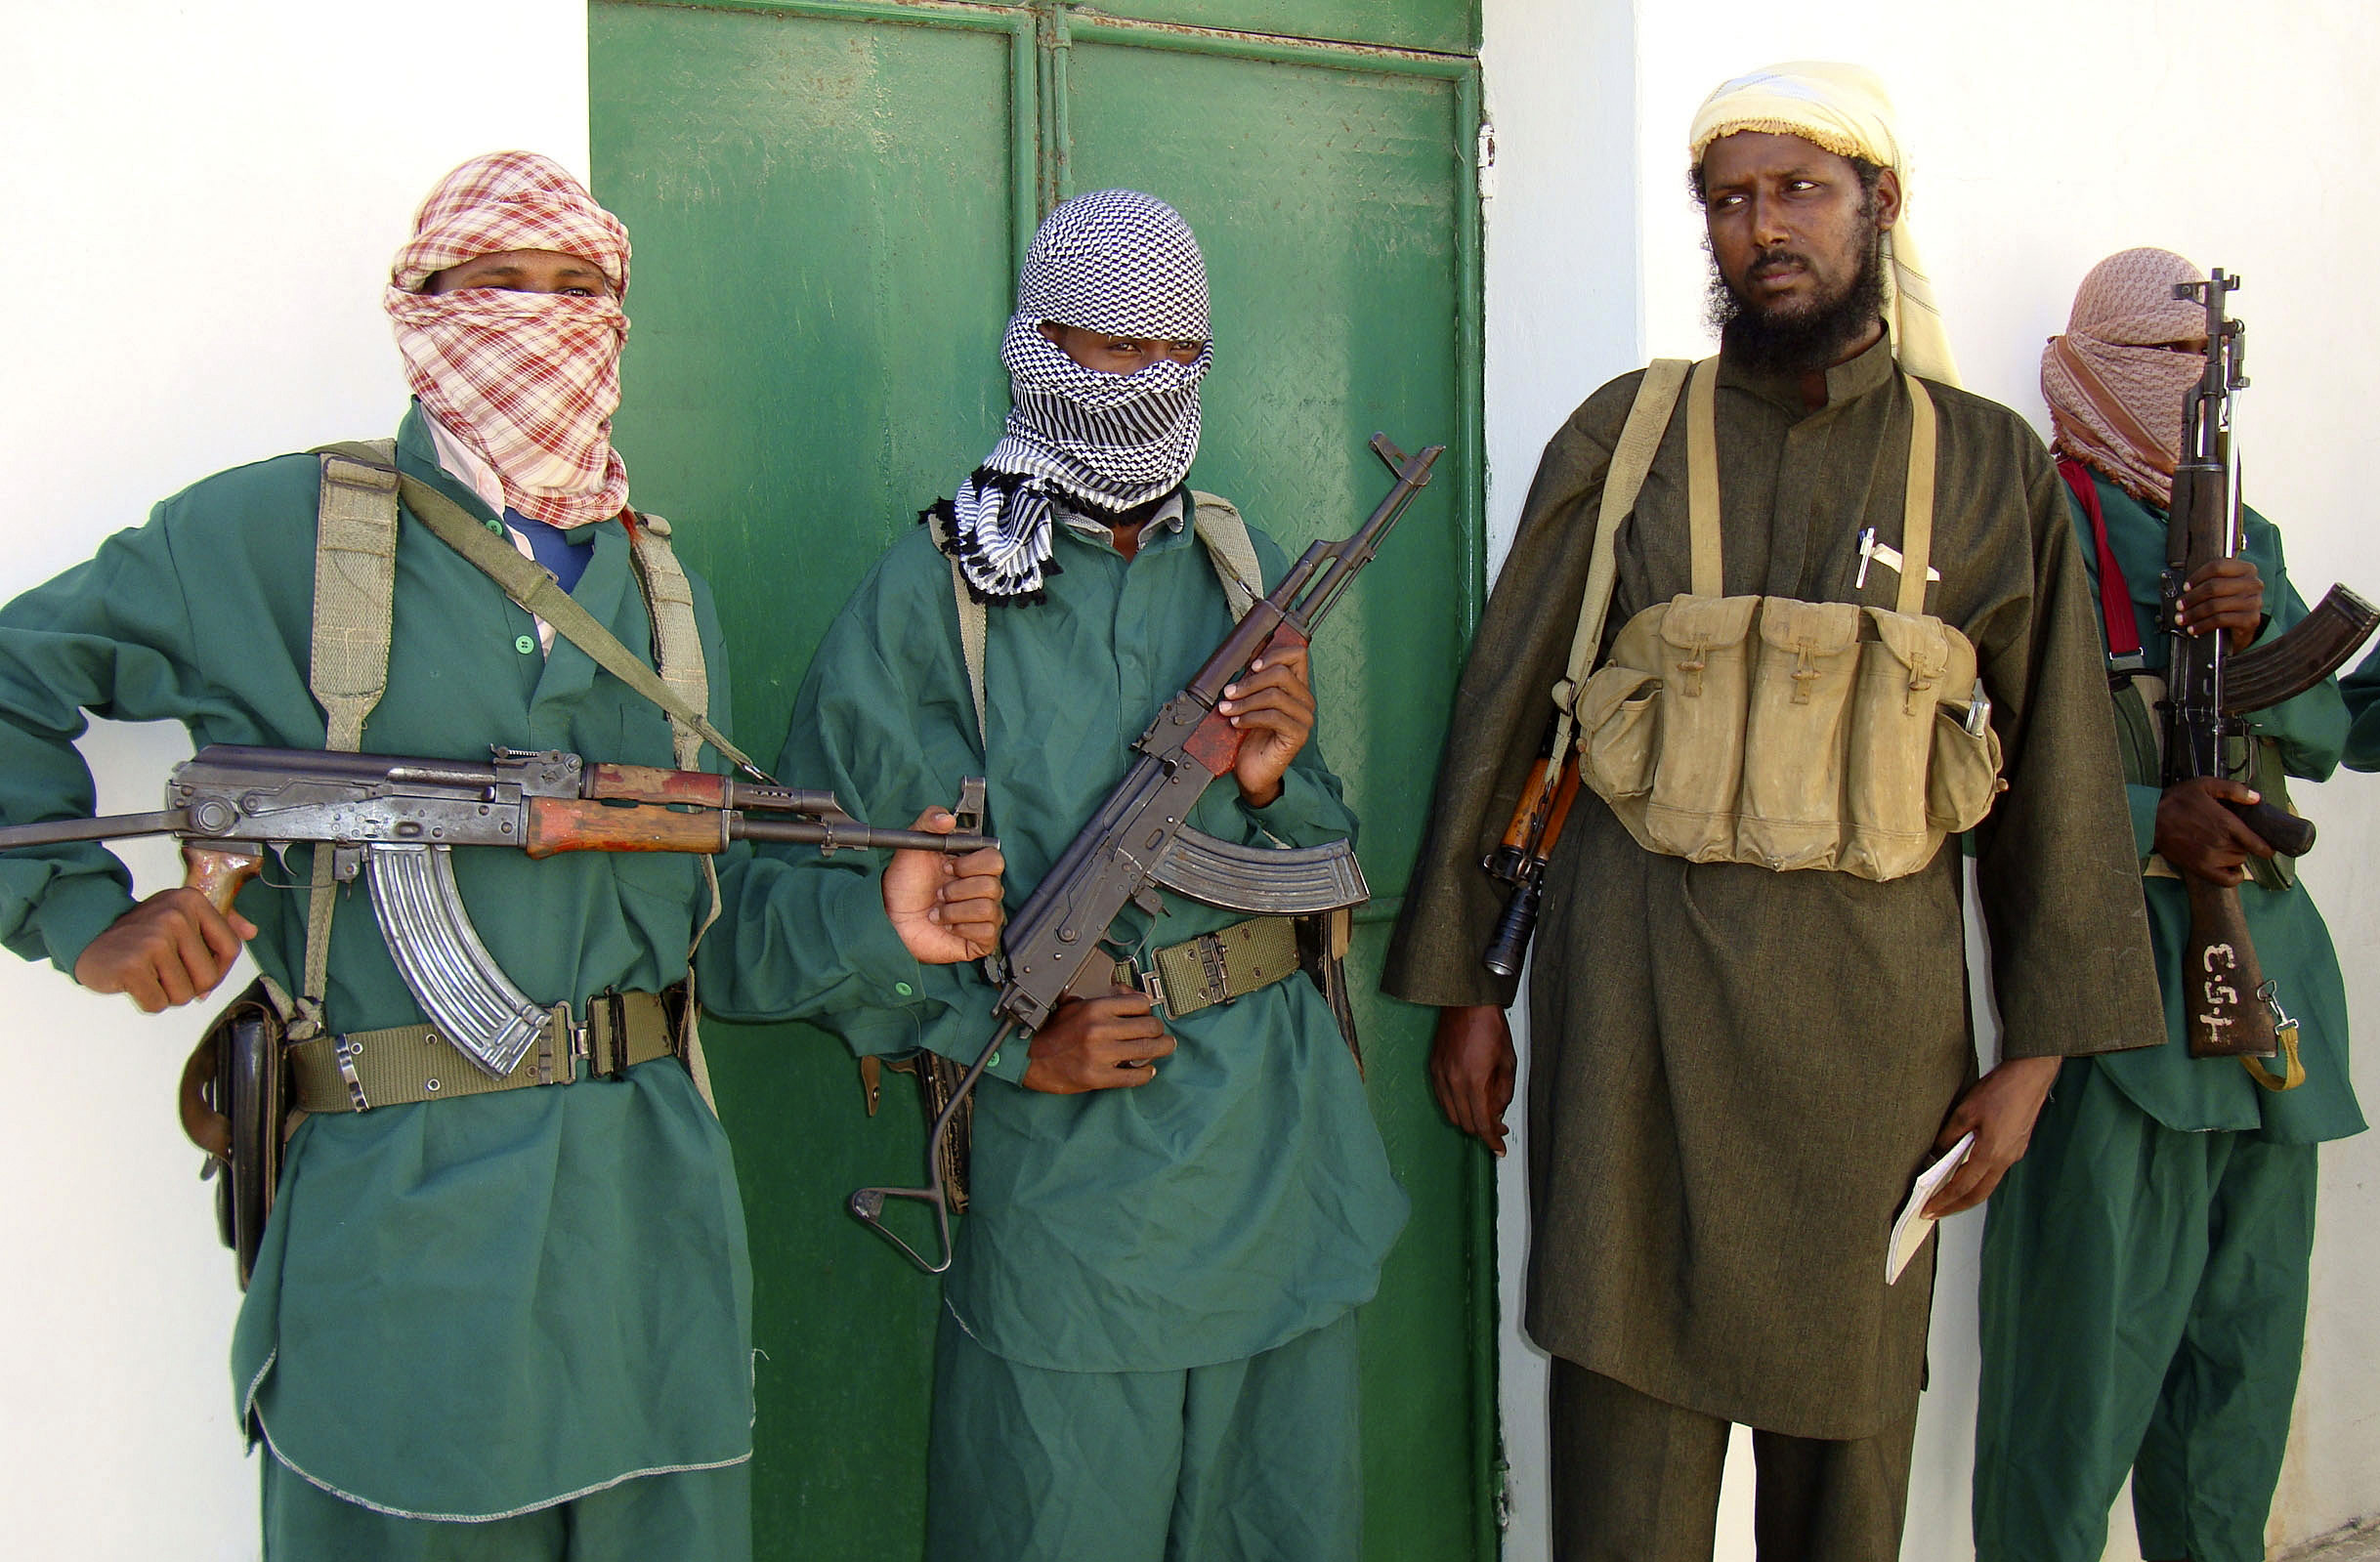 Sheik Muktar Robow Abu Mansur (2nd R), spokesman of Somalia's Islamic al-Shabab, leaves a news conference after vowing to step up attacks against government soldiers and foreign troops in Mogadishu December 14, 2008.  Somalia's President Abdullahi Yusuf sacked his prime minister on Sunday after they disagreed on a new cabinet demanded by donors, throwing his Western-backed interim government into disarray. Hassan Hussein Nur Adde was the second premier fired by Yusuf and had been in the job for only about a year. The fragile administration is fighting Islamist rebels who control the south and are camped on the outskirts of the capital Mogadishu.  REUTERS/Feisal Omar (SOMALIA)